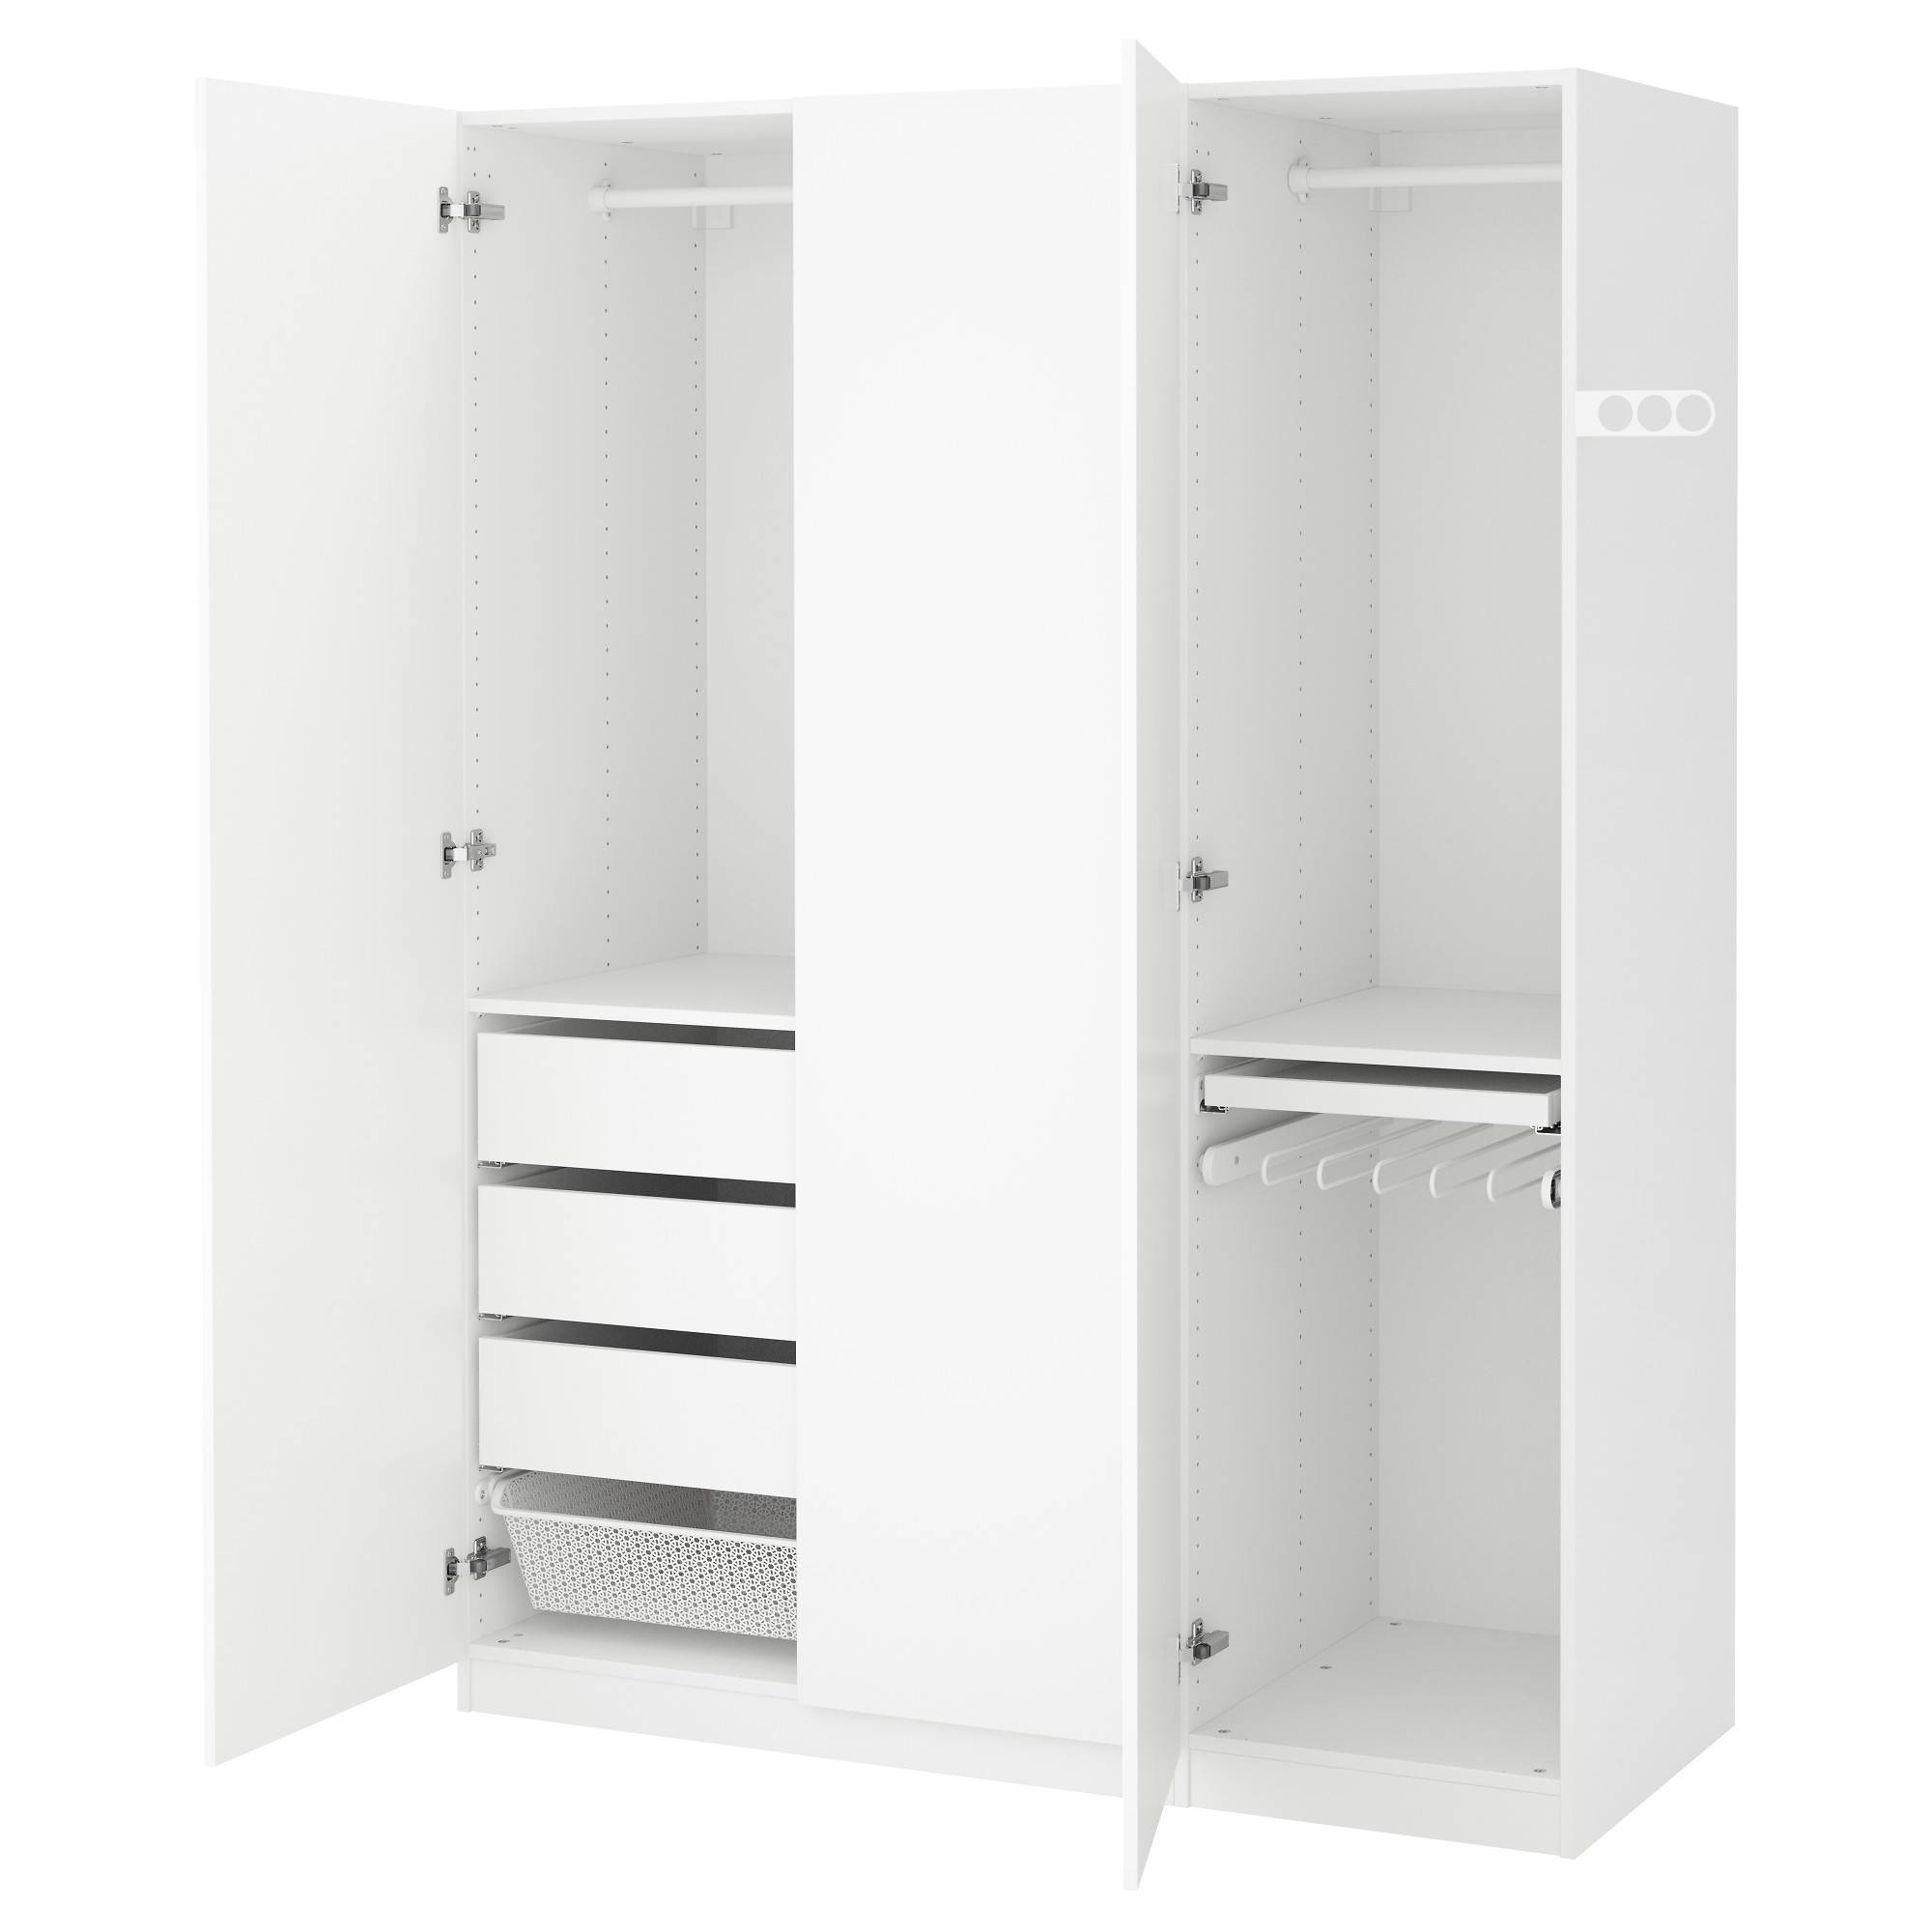 Wardrobes | Ikea with Double Rail White Wardrobes (Image 17 of 21)